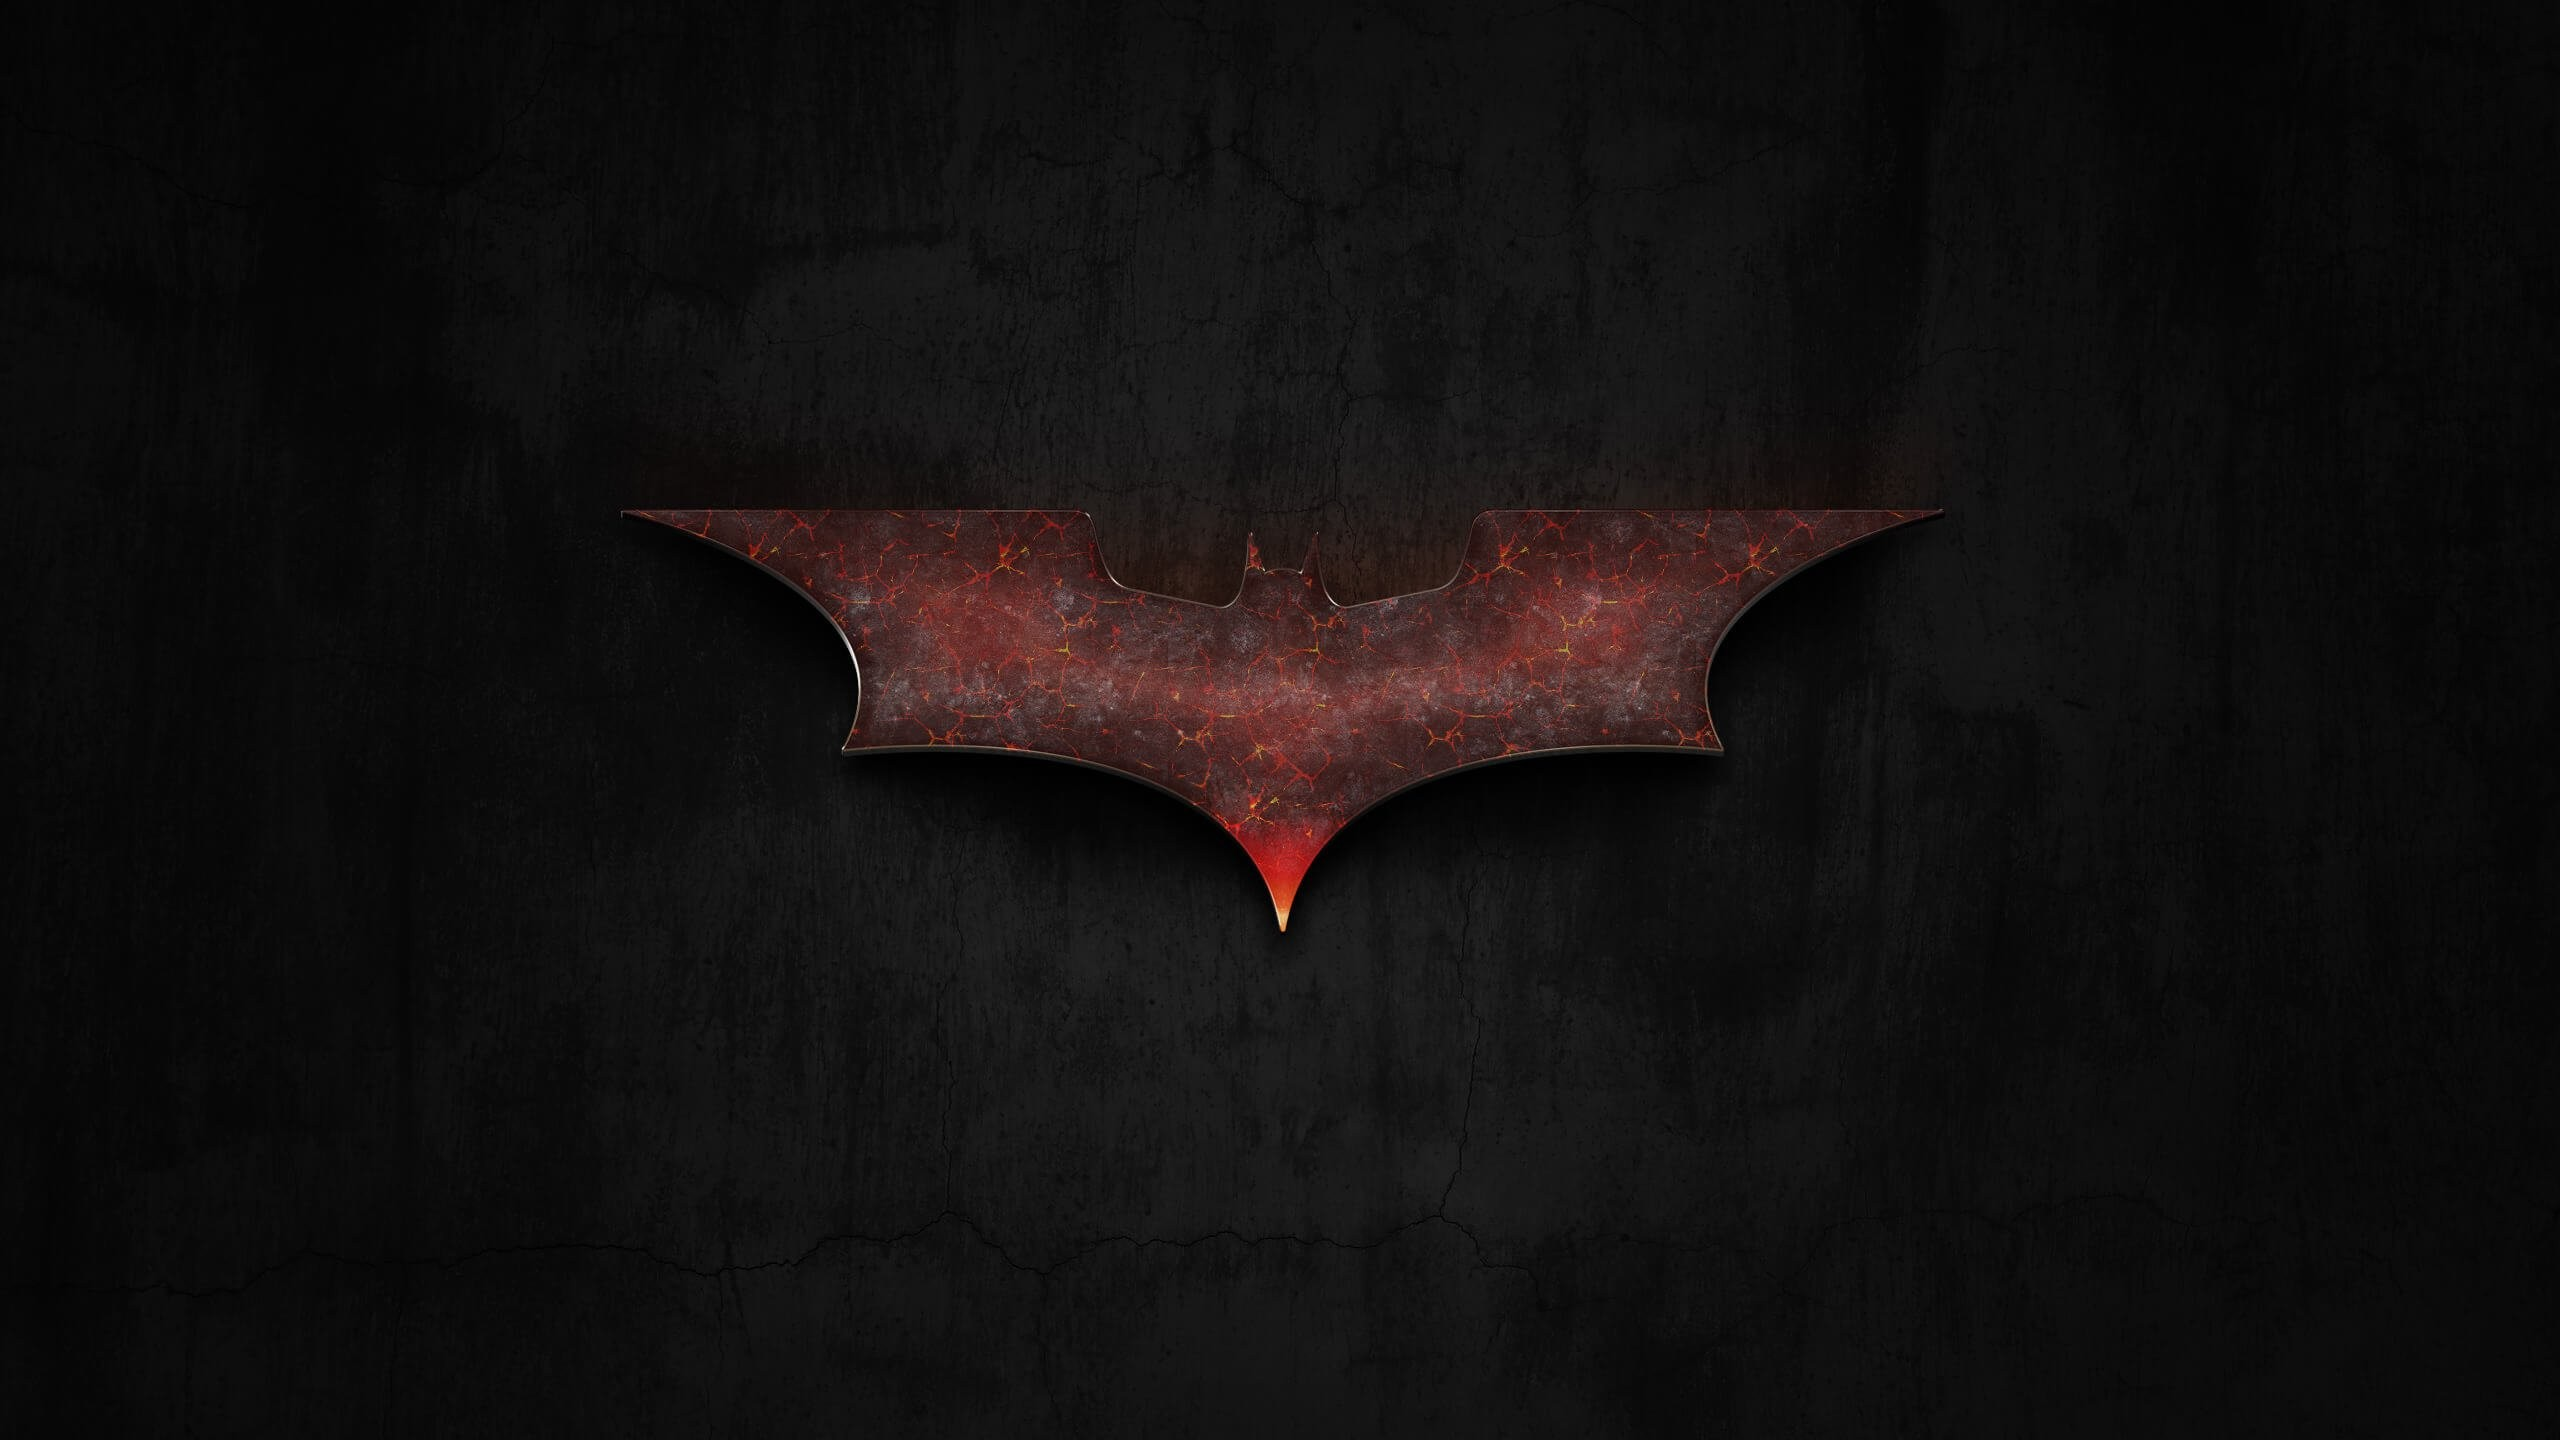 Batman: Fire Rising Wallpaper for Desktop 2560x1440